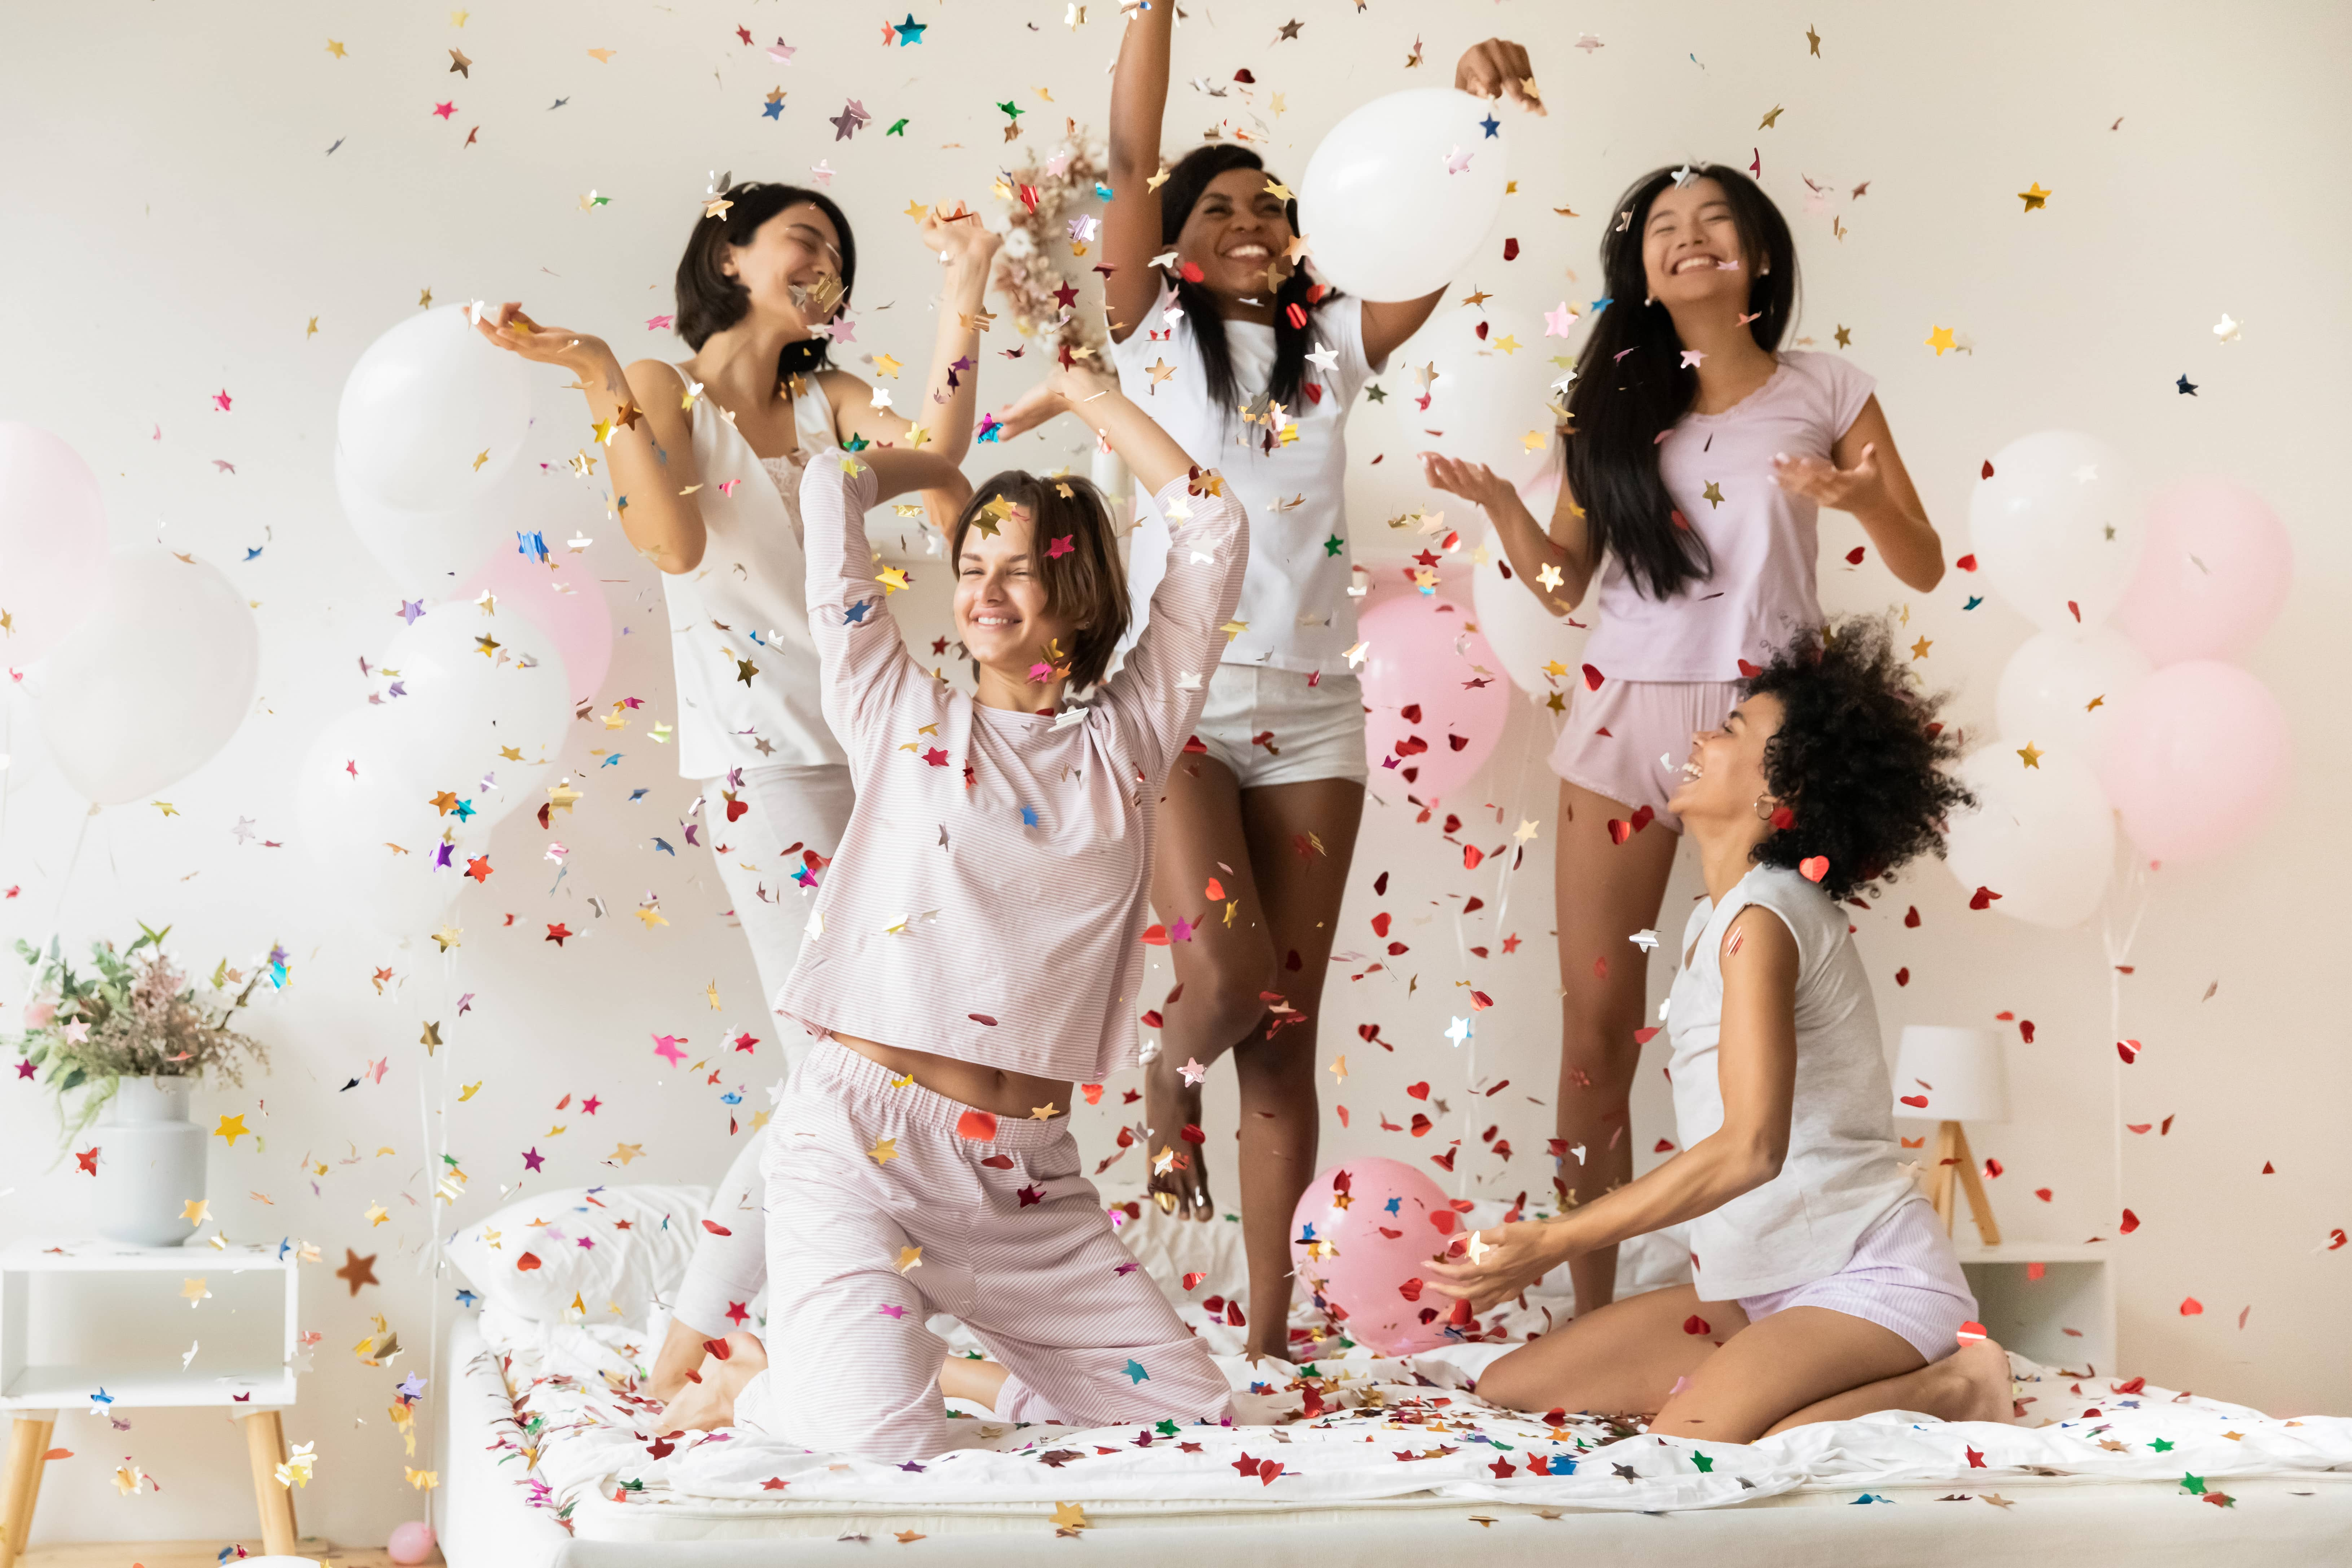 Five girls dancing on a bed with rainbow confetti and balloons